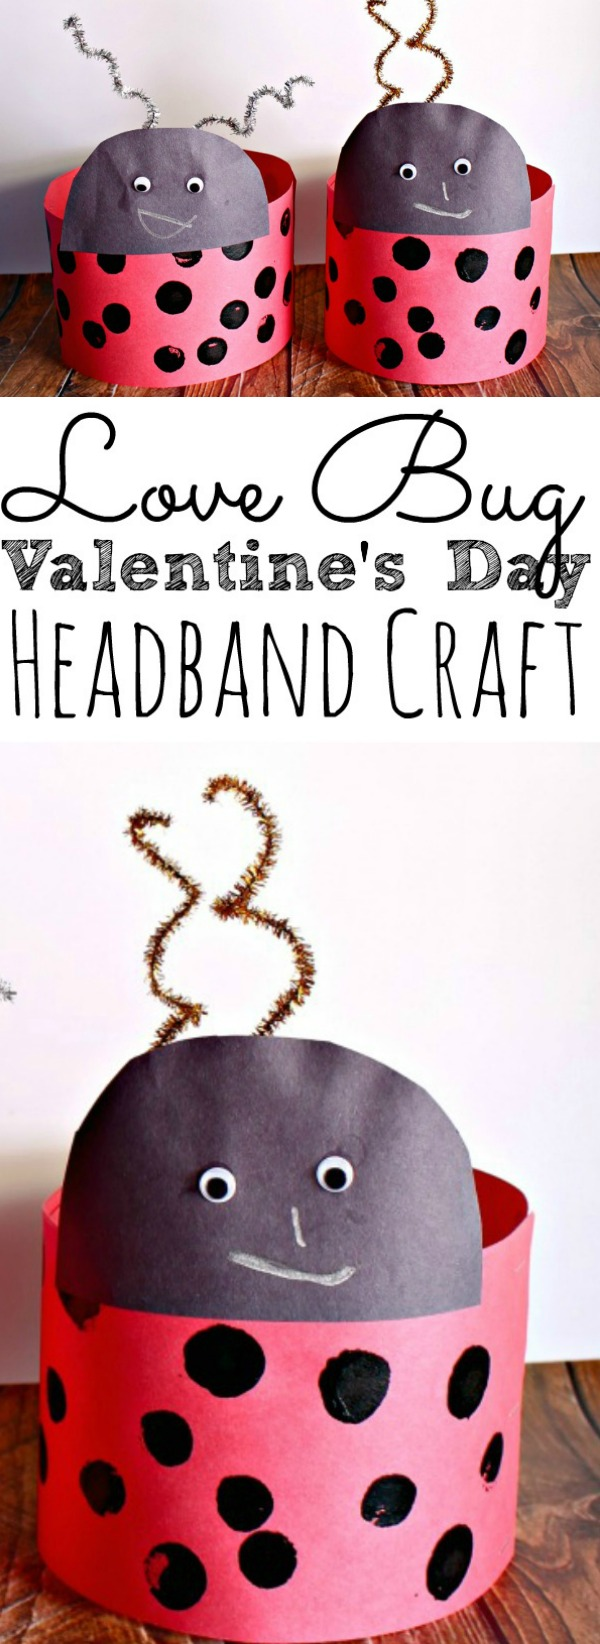 Valentines Day Love Bug Headband Craft